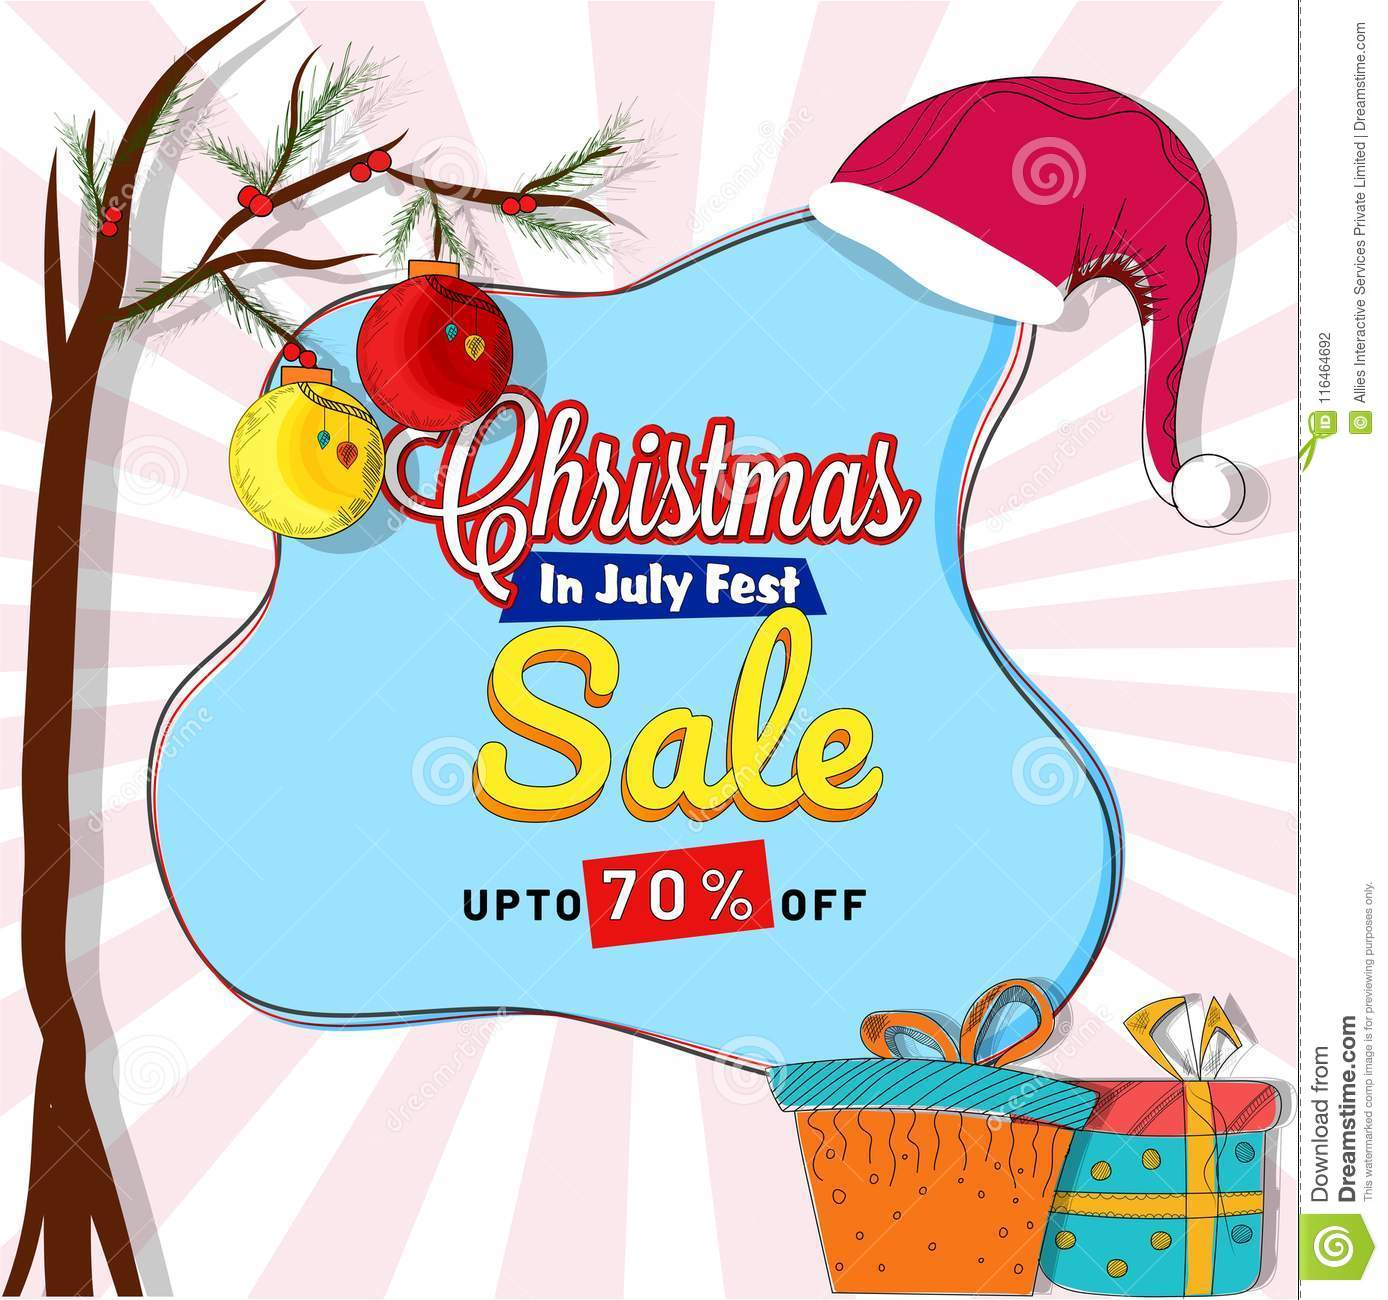 Christmas In July Party Clipart.Christmas Sale In July Poster Banner Or Flyer Design With